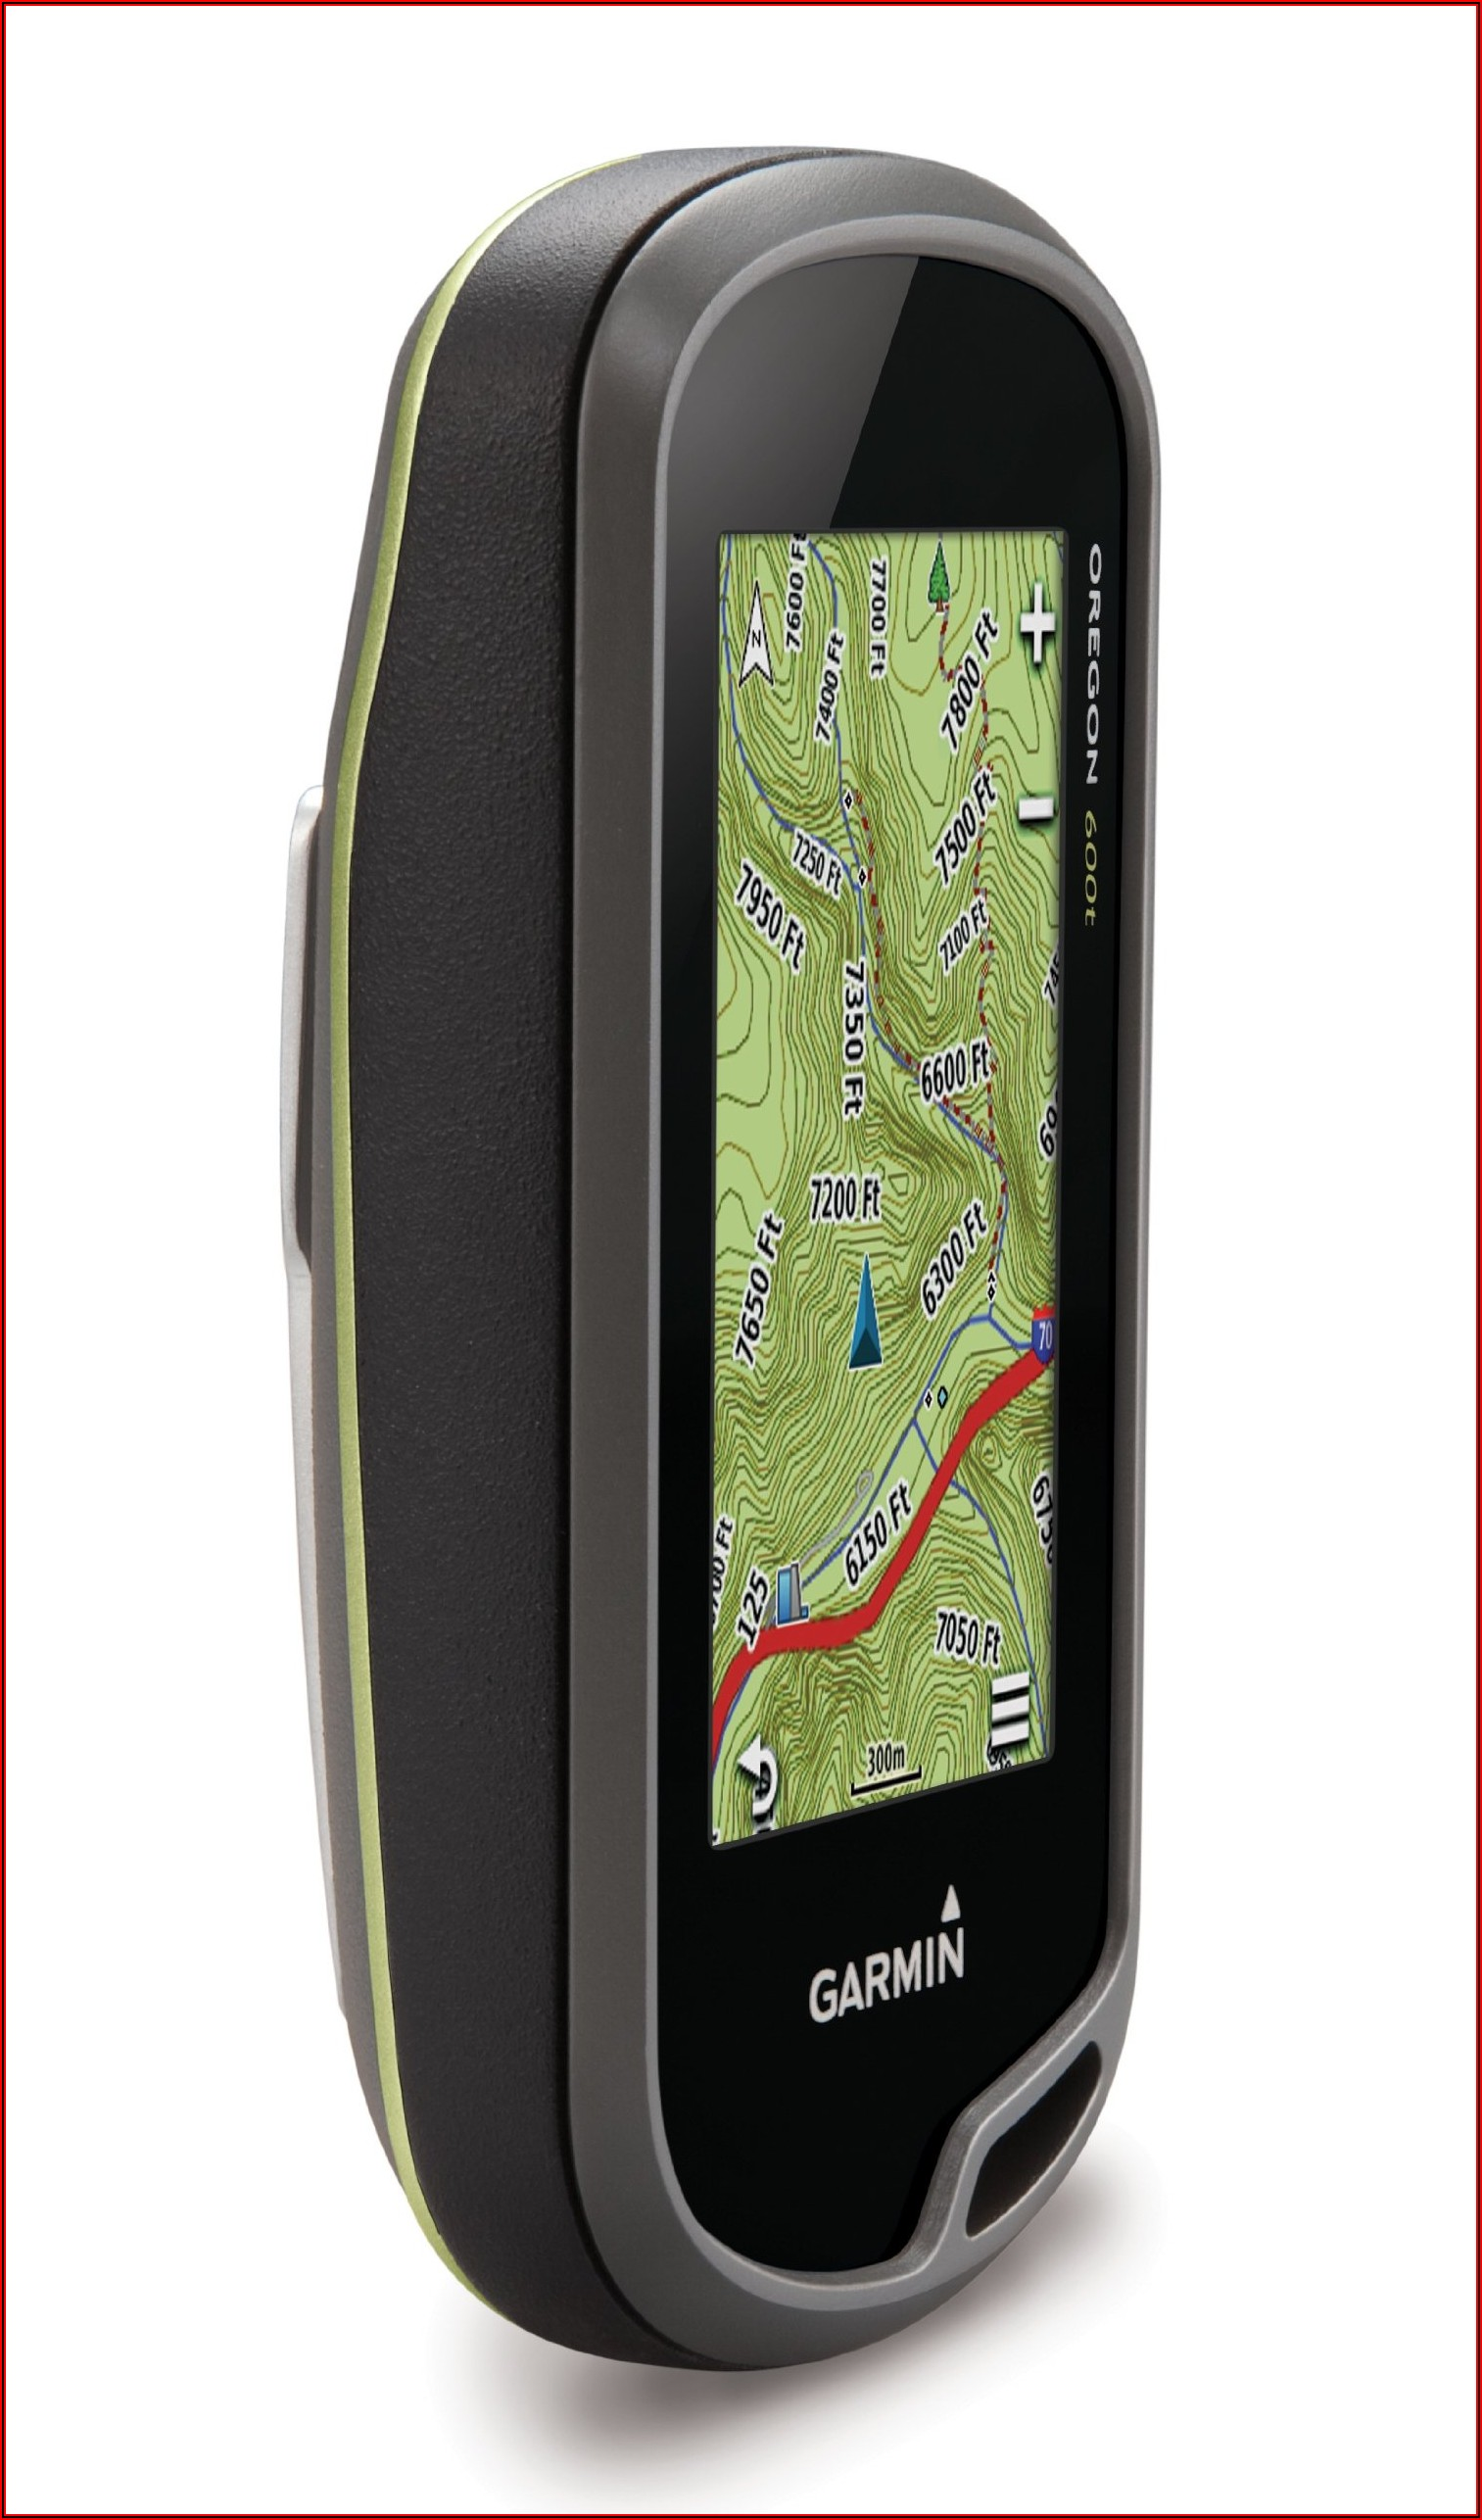 Handheld Gps With Topographic Maps